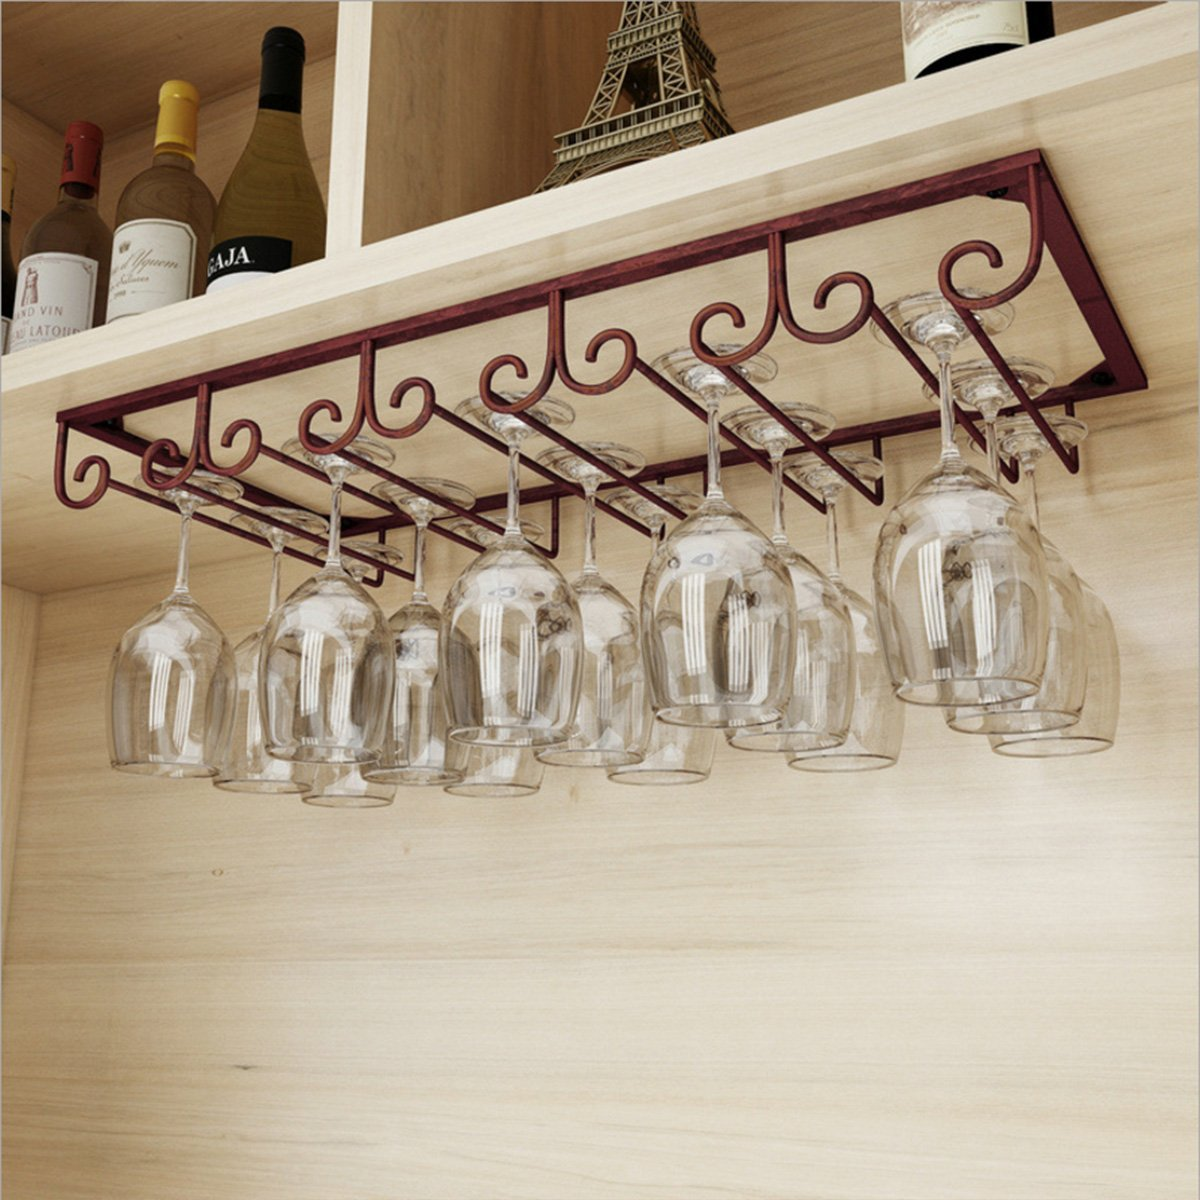 Warm Van Under Cabinet Hanging 5 Slots Iron Wine Glass Rack,Rustic Organizer Storage Rack,Stemware Cup Holder for Home Bar, Holds up to 10-15 Glasses(Bronze)